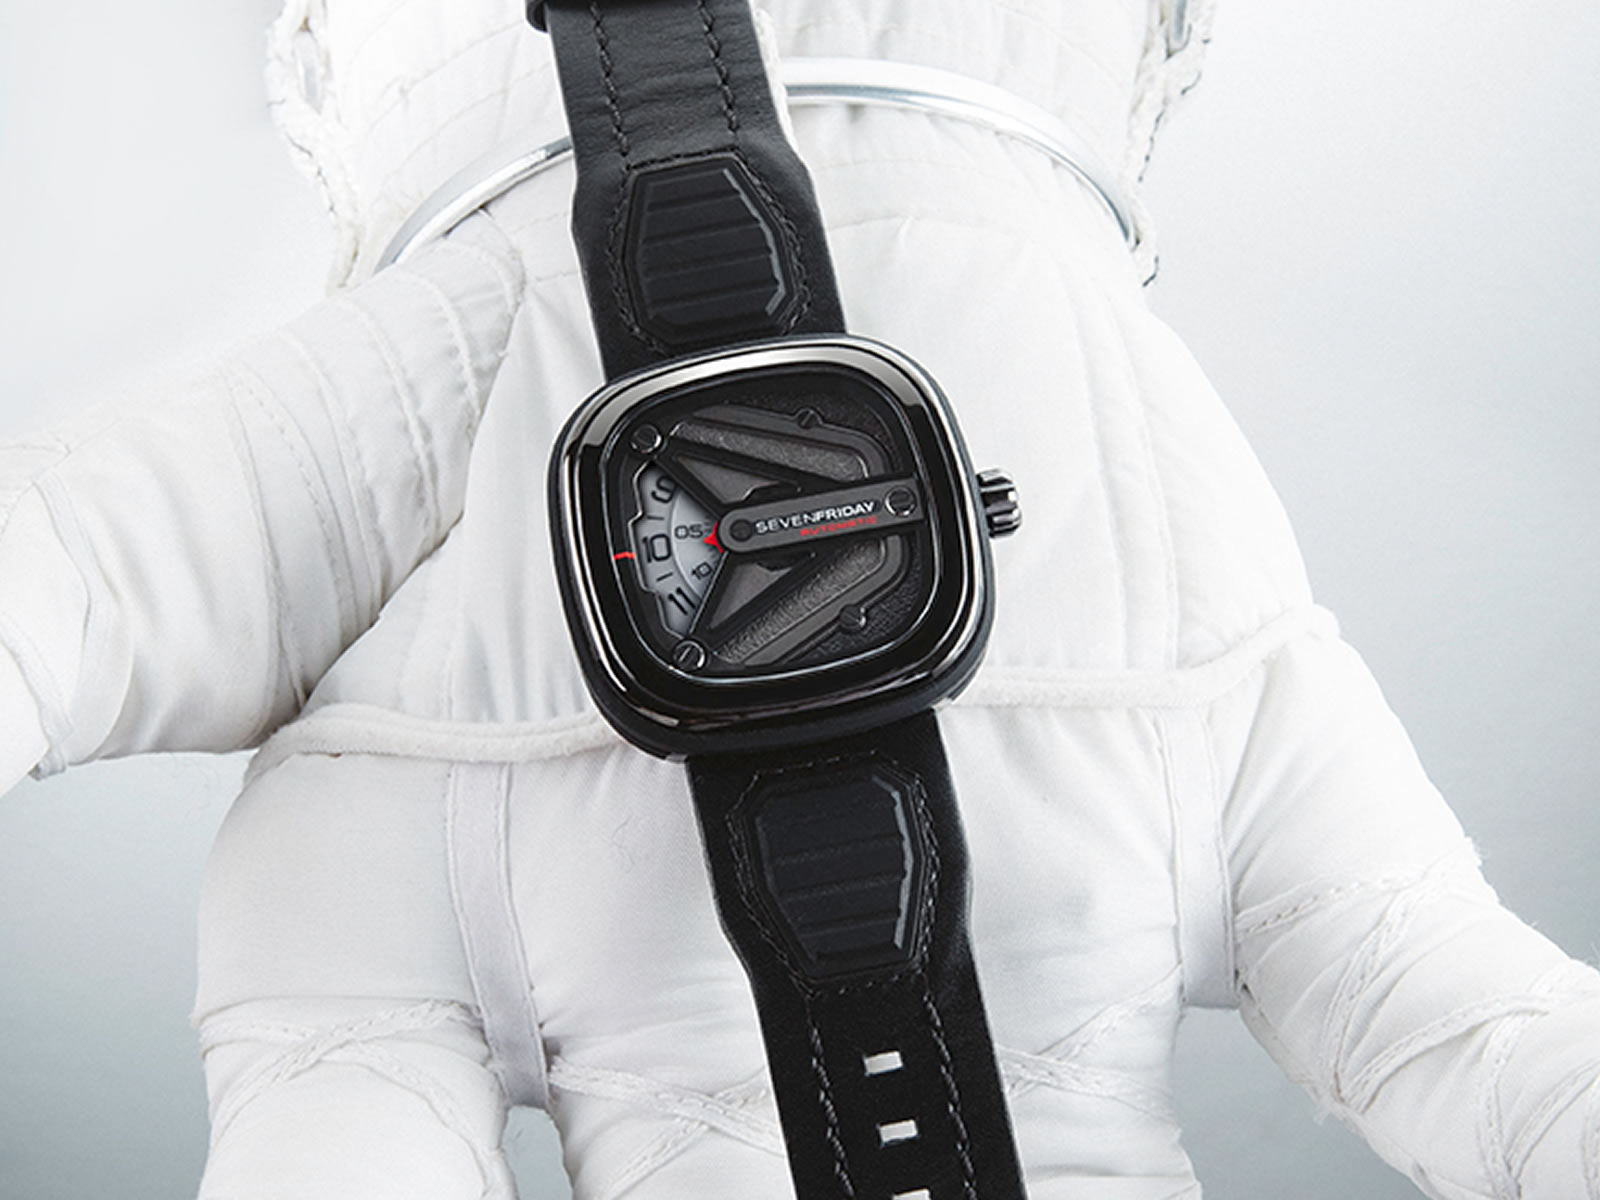 sevenfriday-m3-01-spaceship-edition-9-.jpg